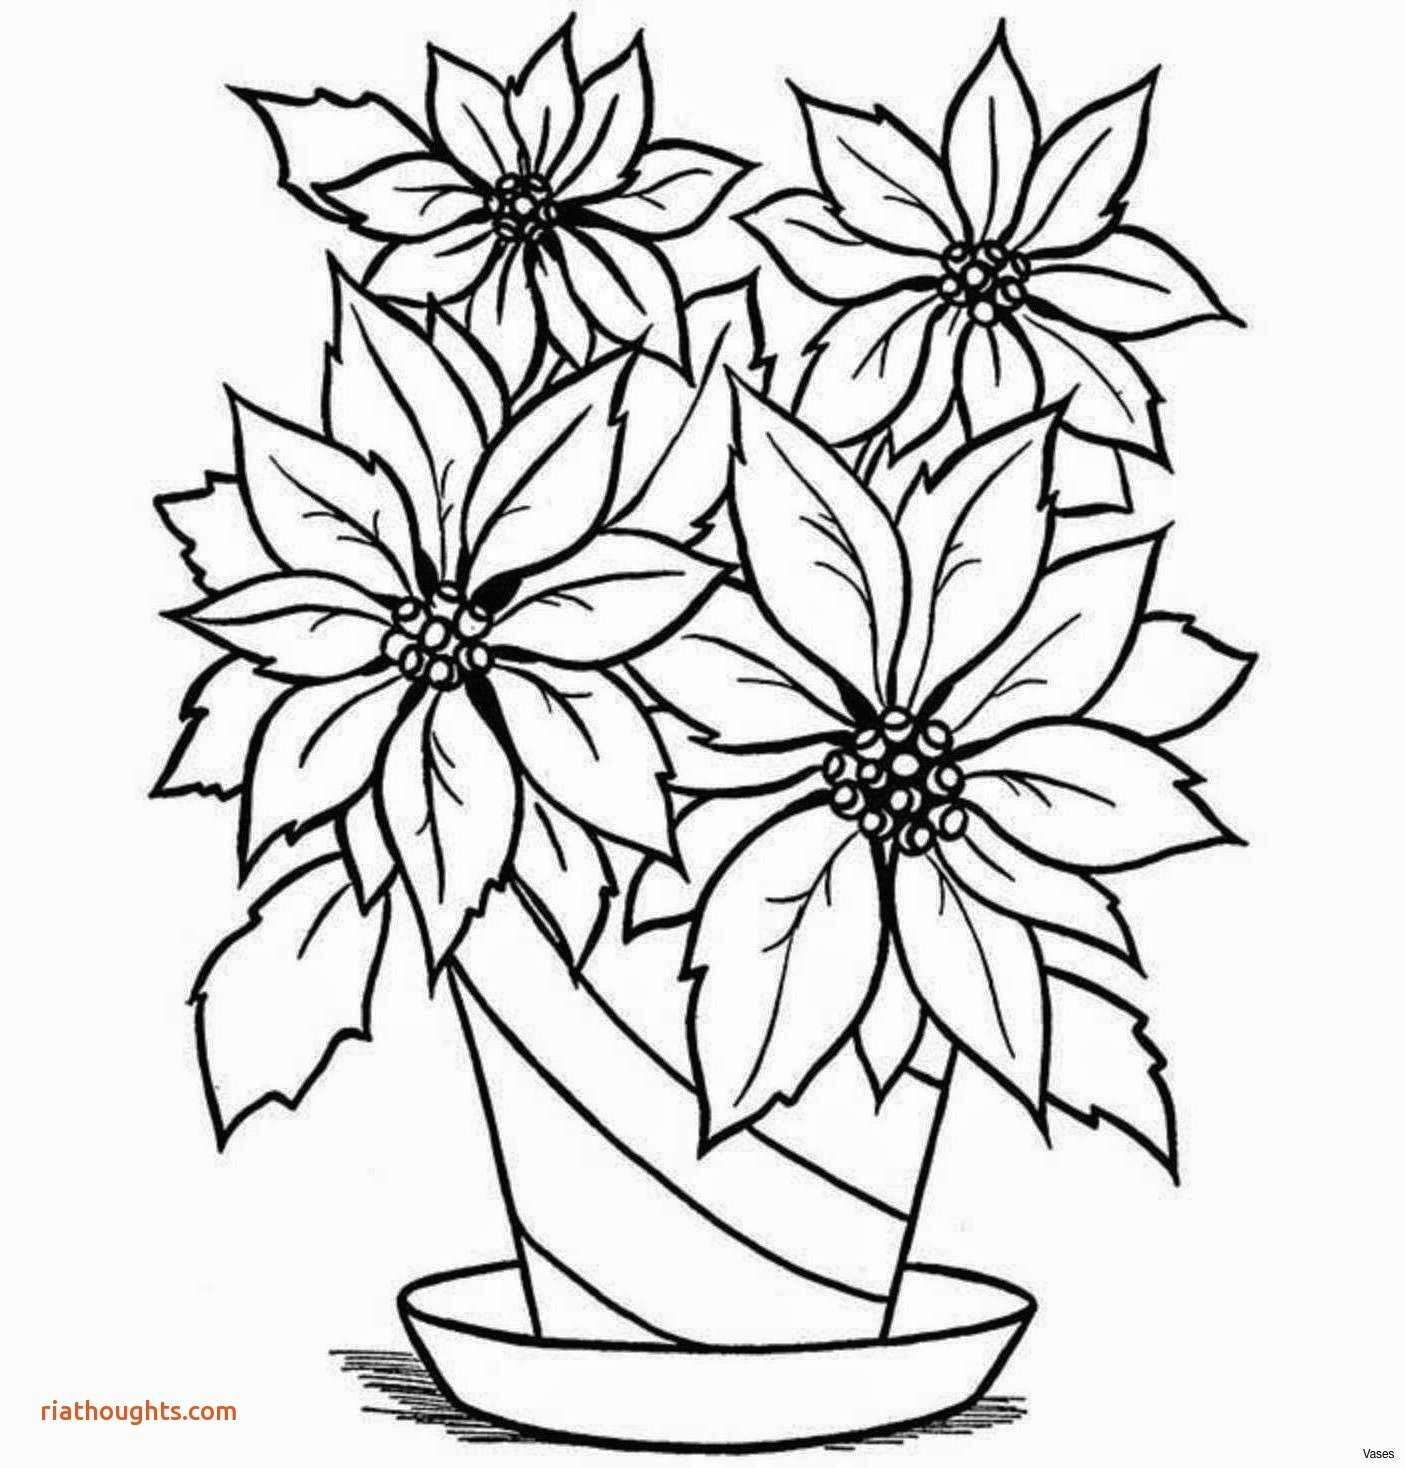 drawn vase pencil drawing 14h vases how to draw flowers in a pin sunflower 3i 0d elegant cool drawings for kids step